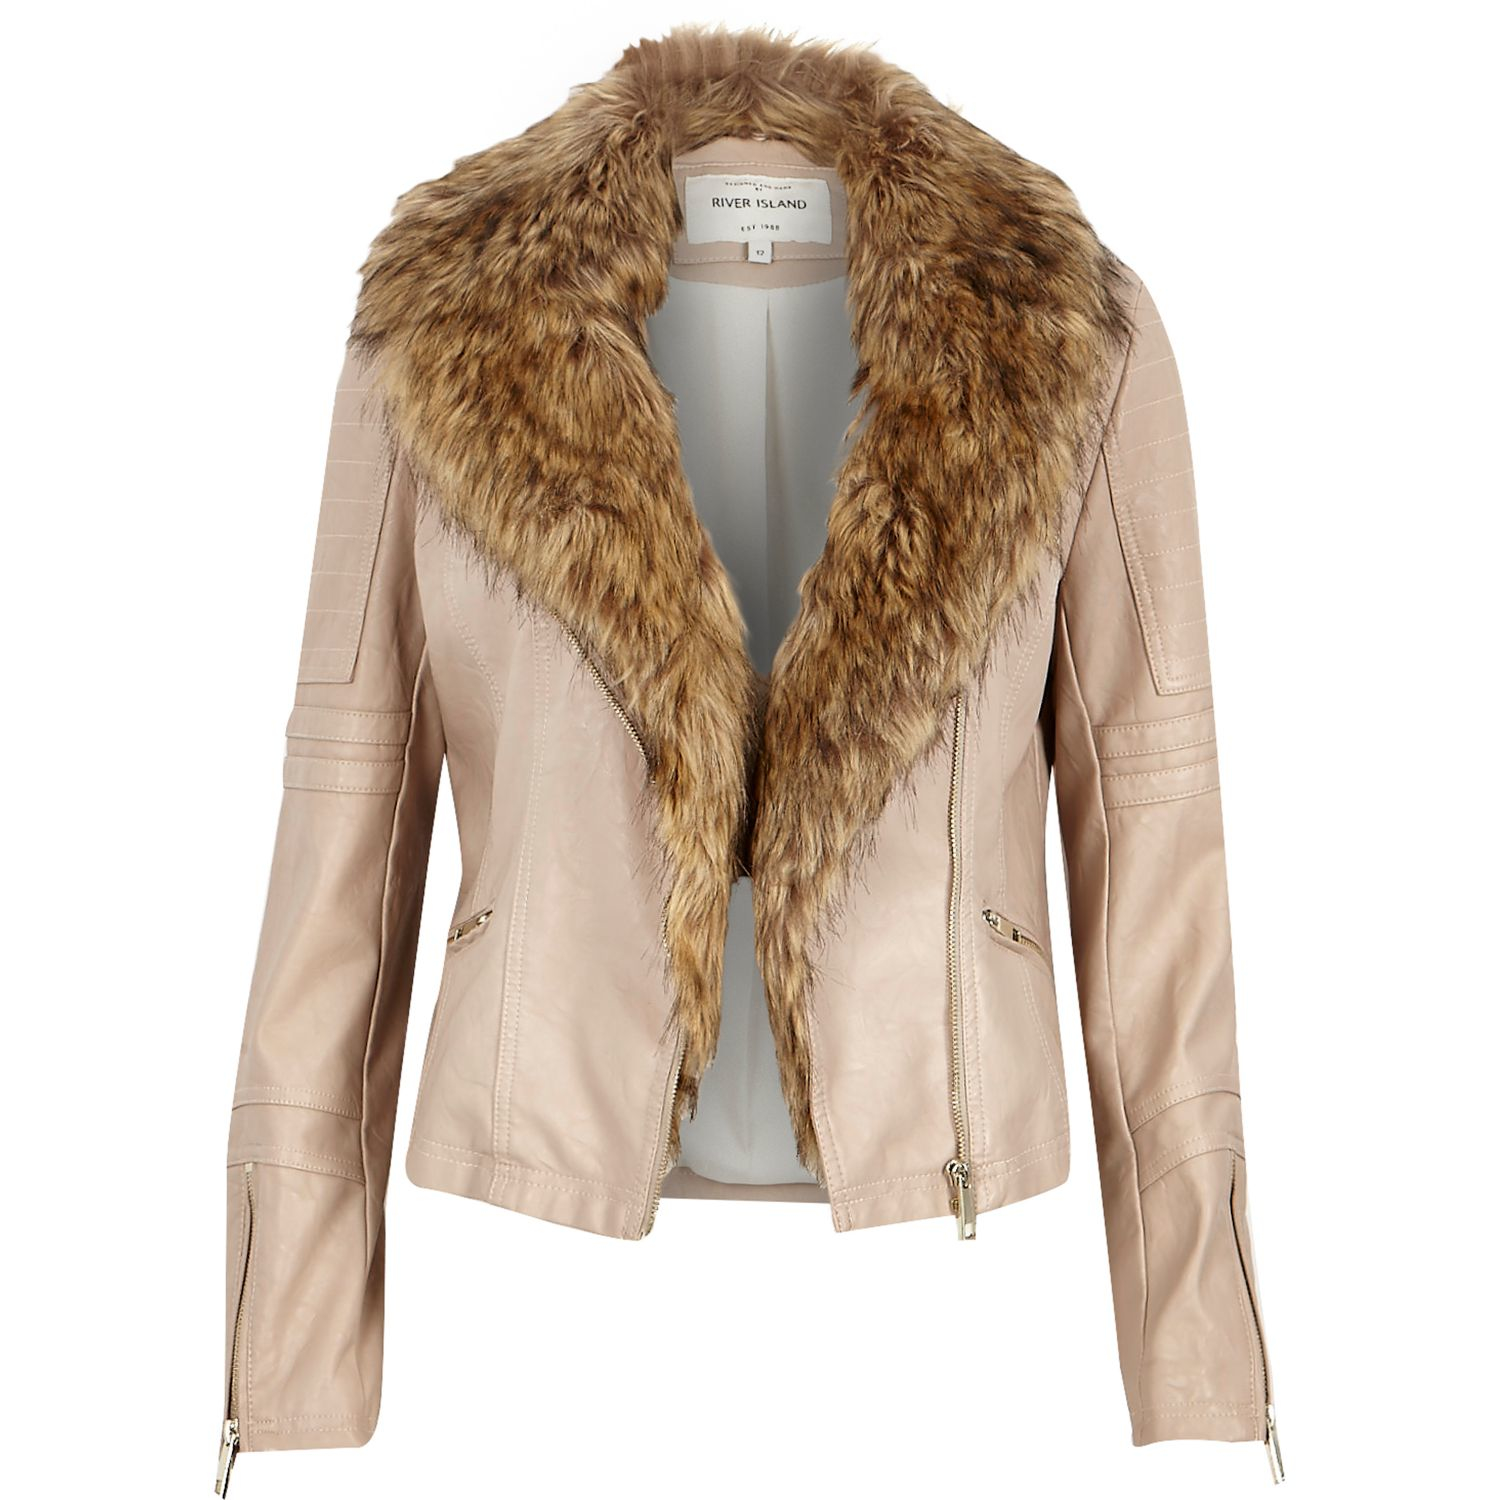 b9a789408c49 River Island Cream Leather-look Faux Fur Biker Jacket in Natural - Lyst